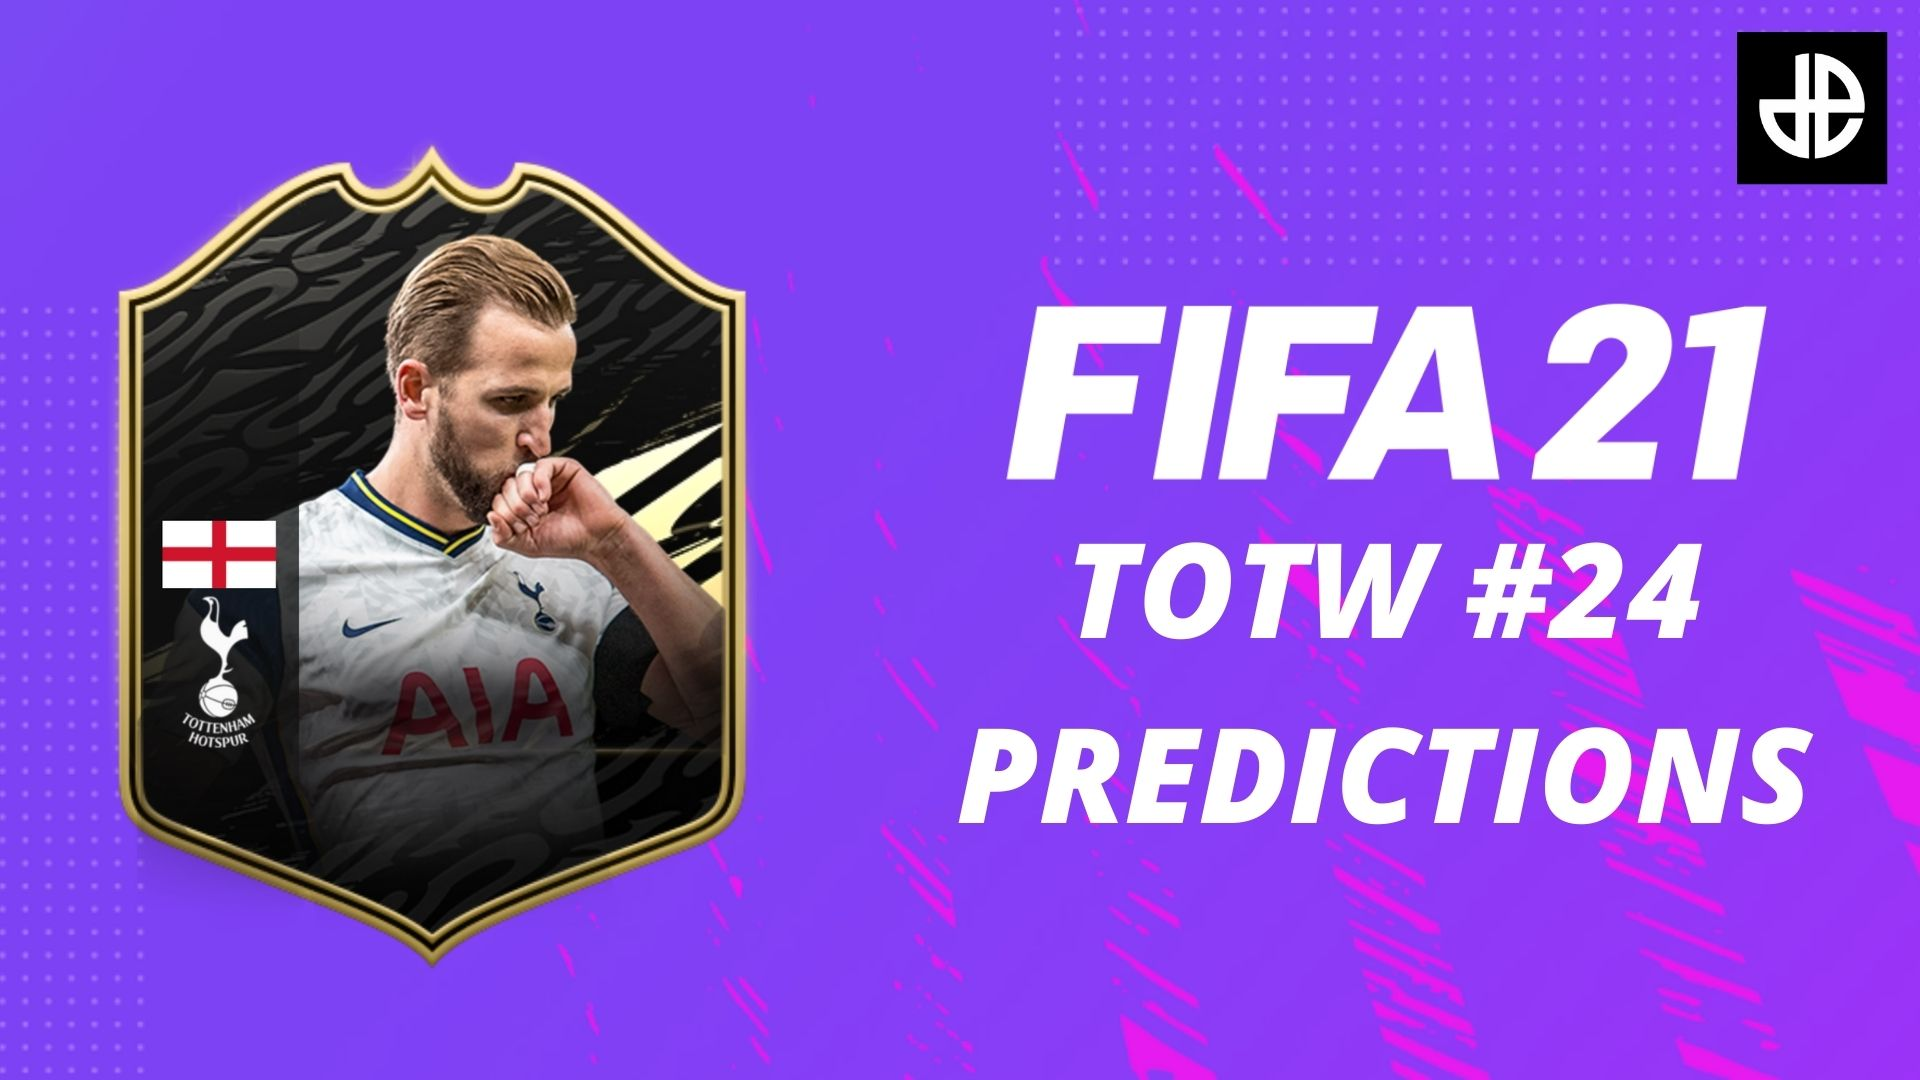 FIFA 21 TOTW 24 predictions with a Harry Kane card